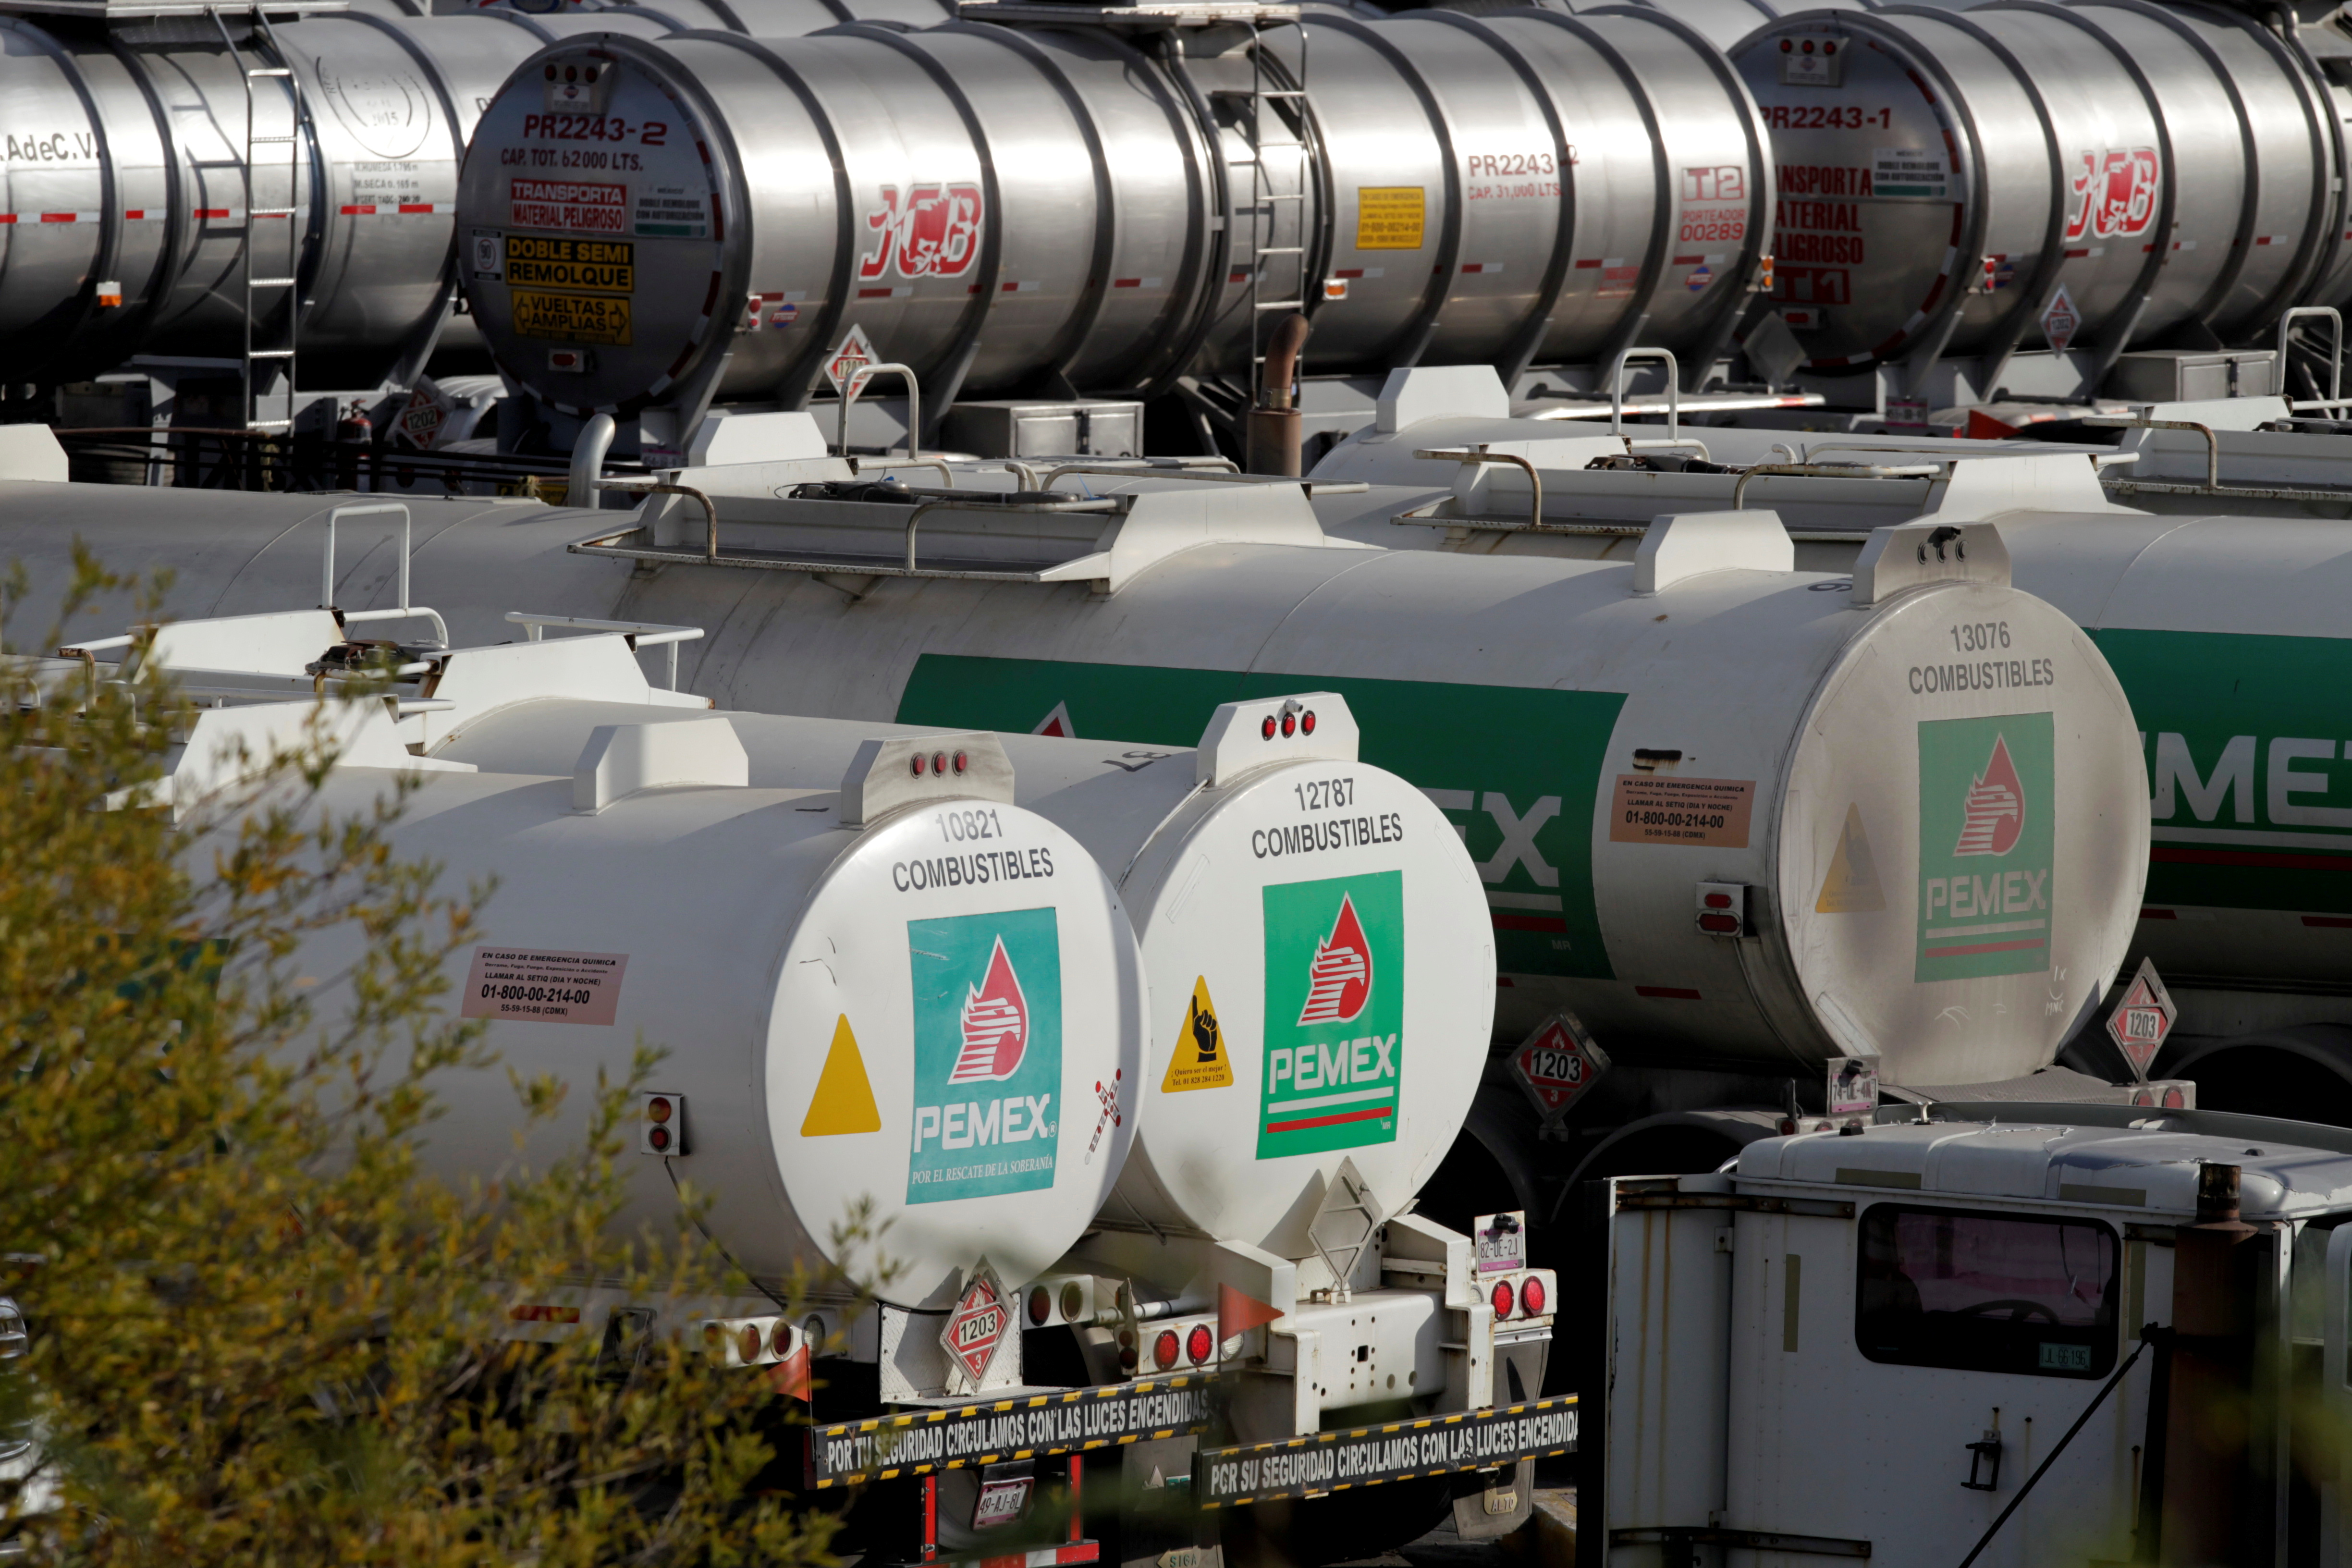 Tanker trucks are pictured at Mexican state oil firm Pemex's Cadereyta refinery in Cadereyta, on the outskirts of Monterrey, Mexico, December 10, 2020. REUTERS/Daniel Becerril